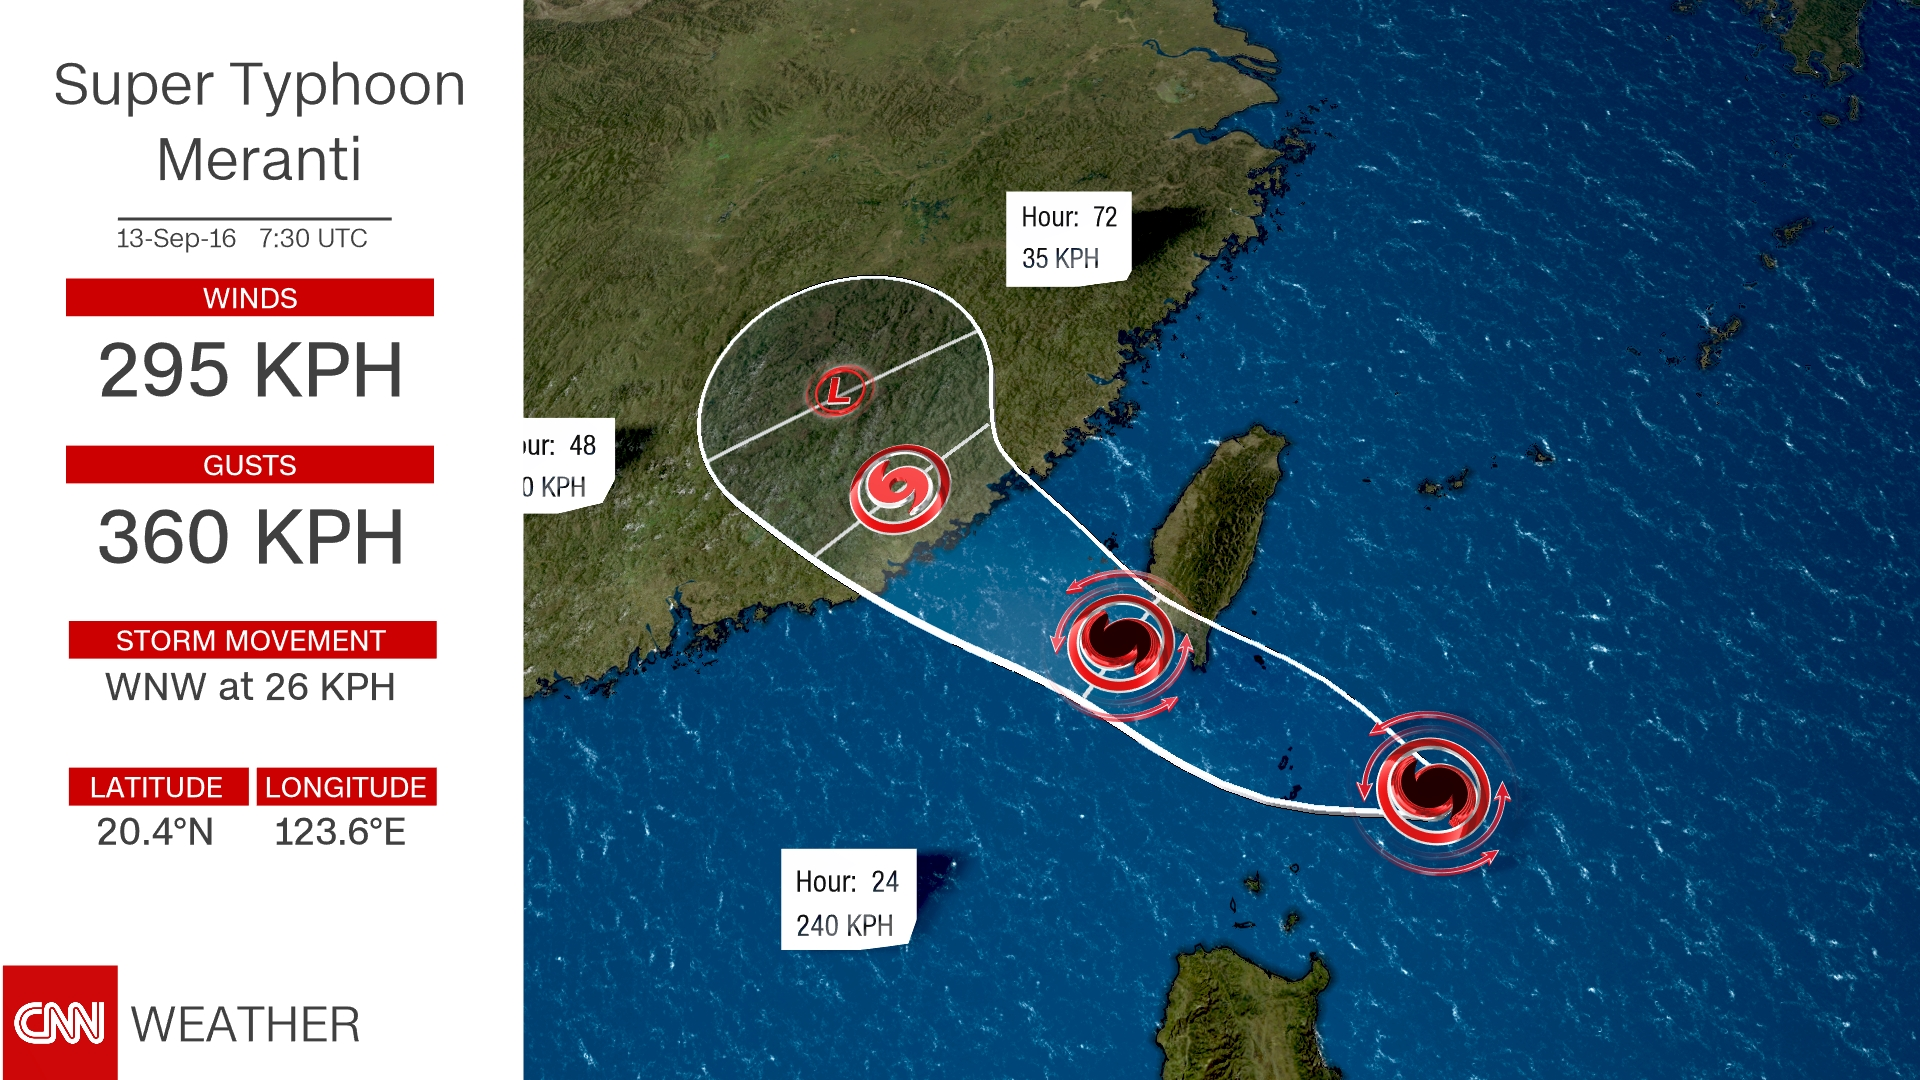 Taiwan and China brace for Super Typhoon Meranti